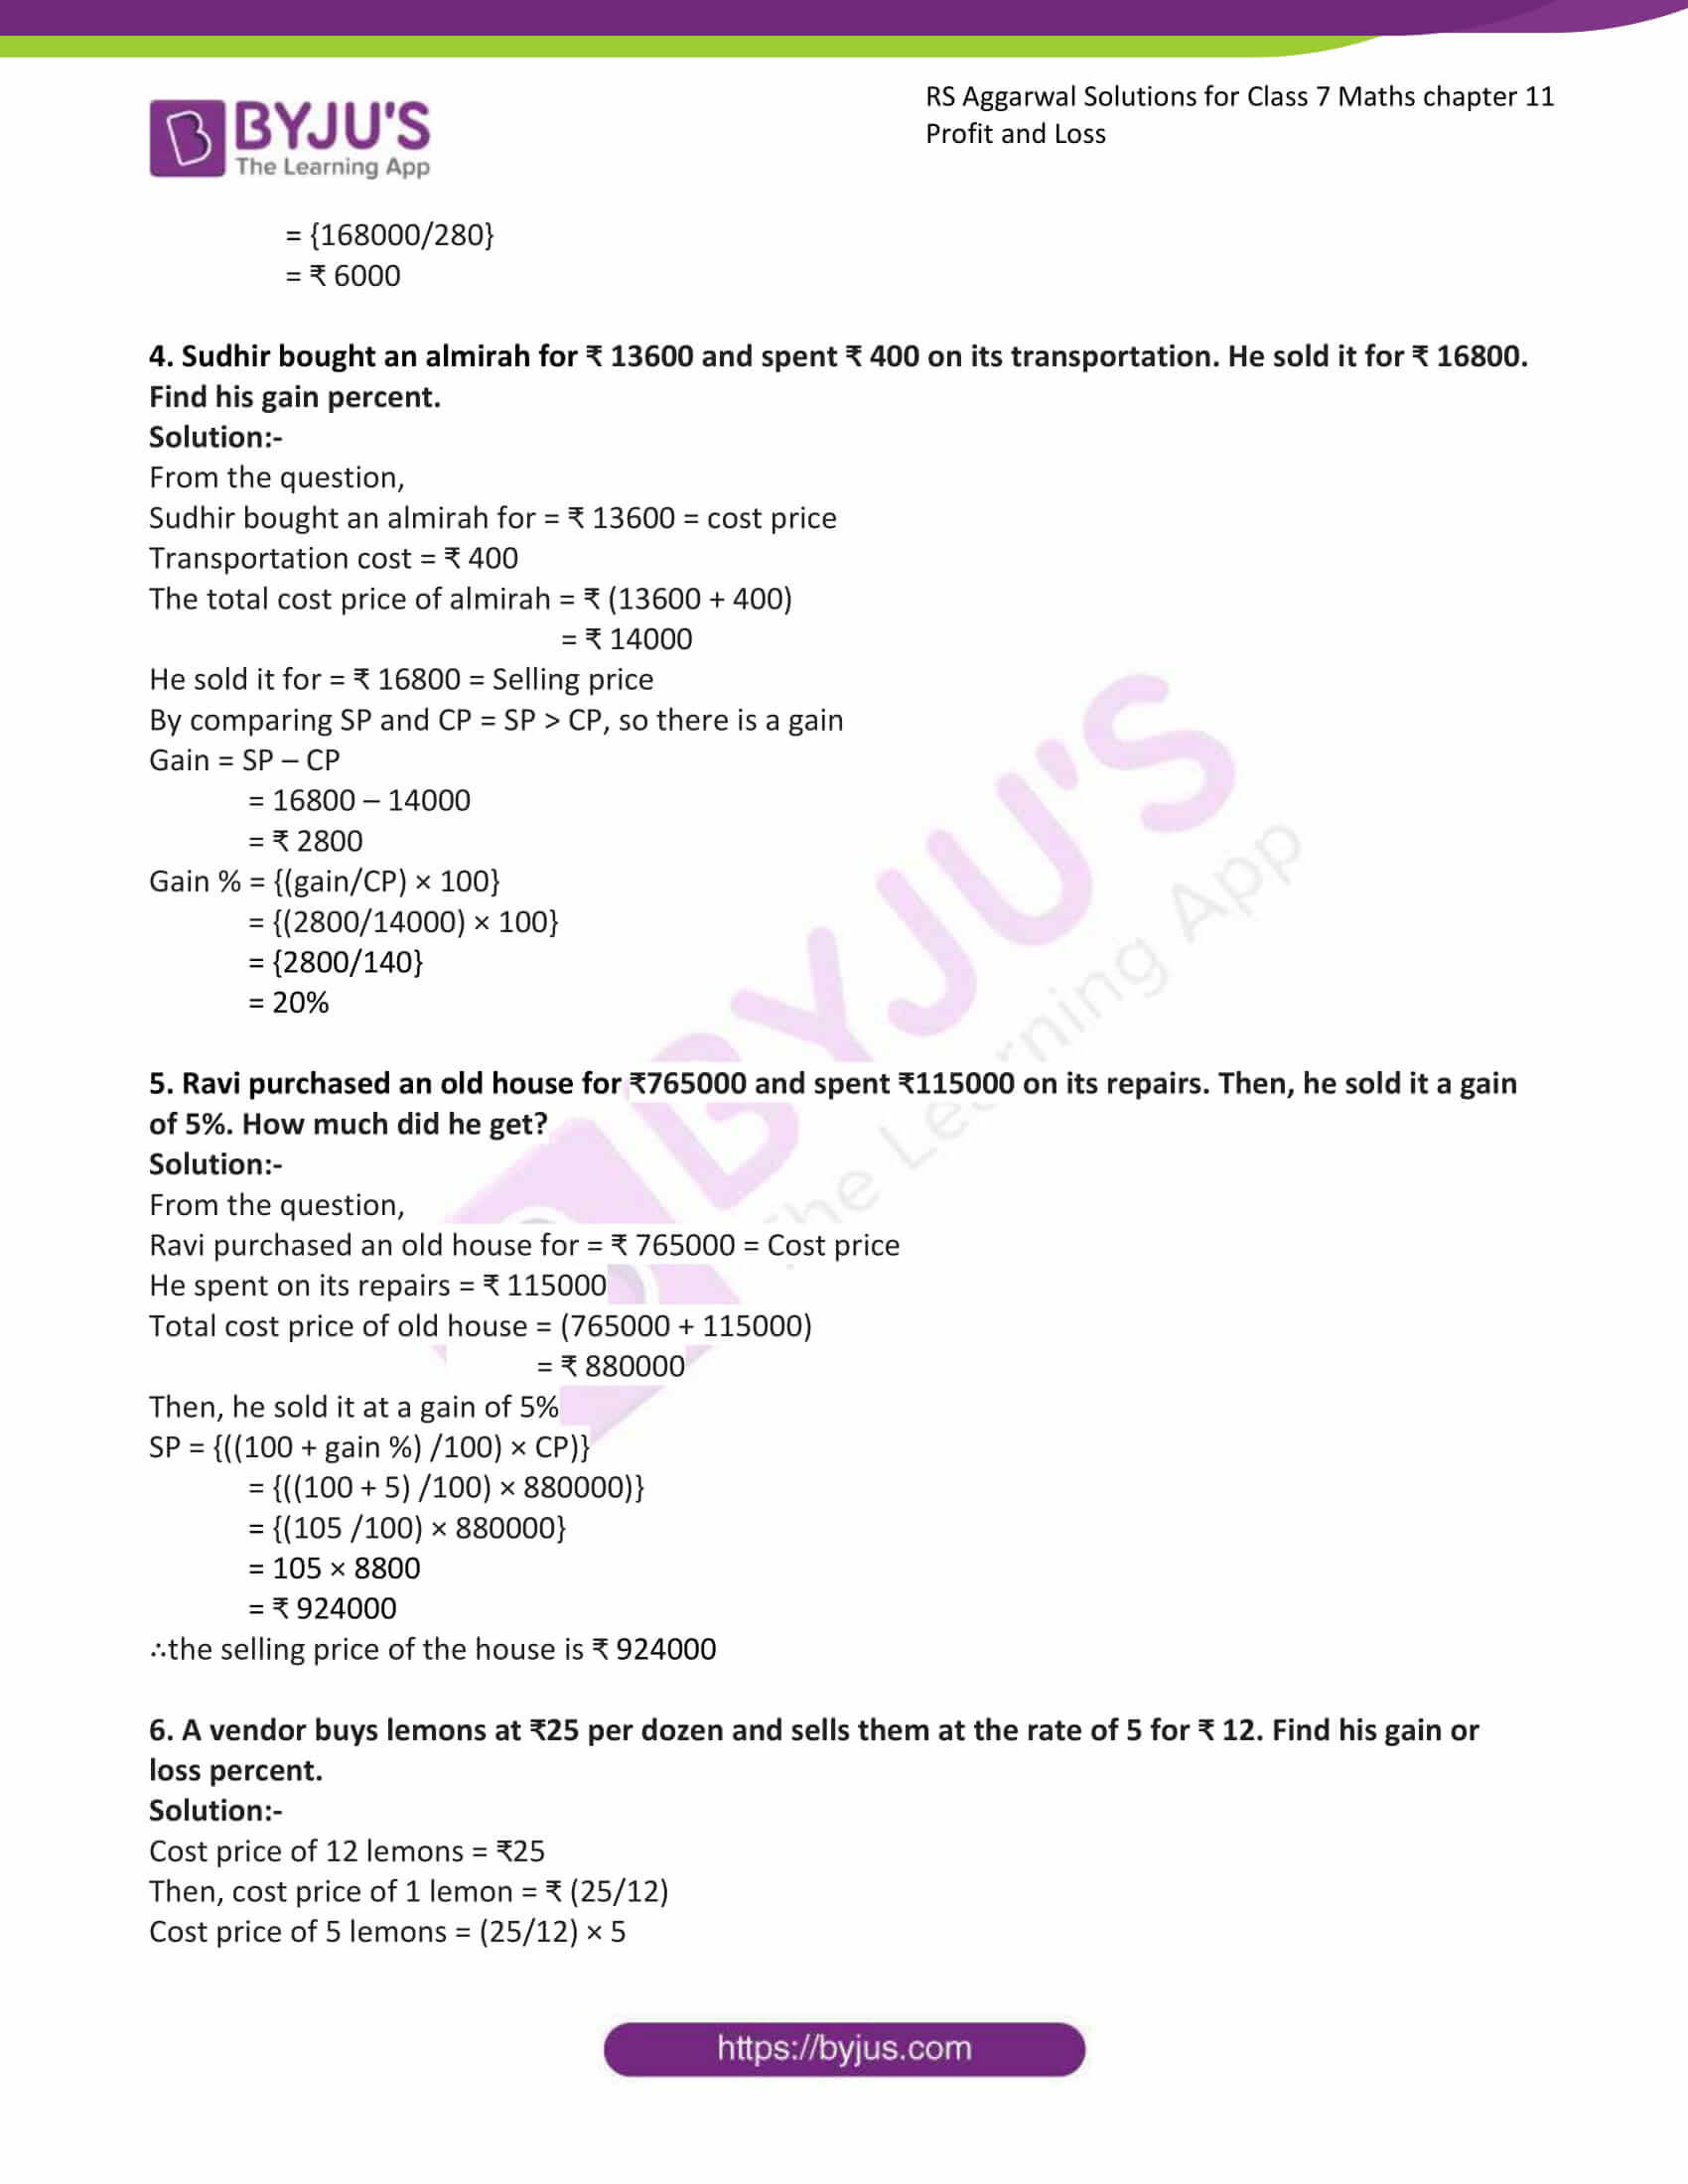 RS Aggarwal Solutions Class 7 Maths Chapter 11 Exercise 11A Profit and Loss 04